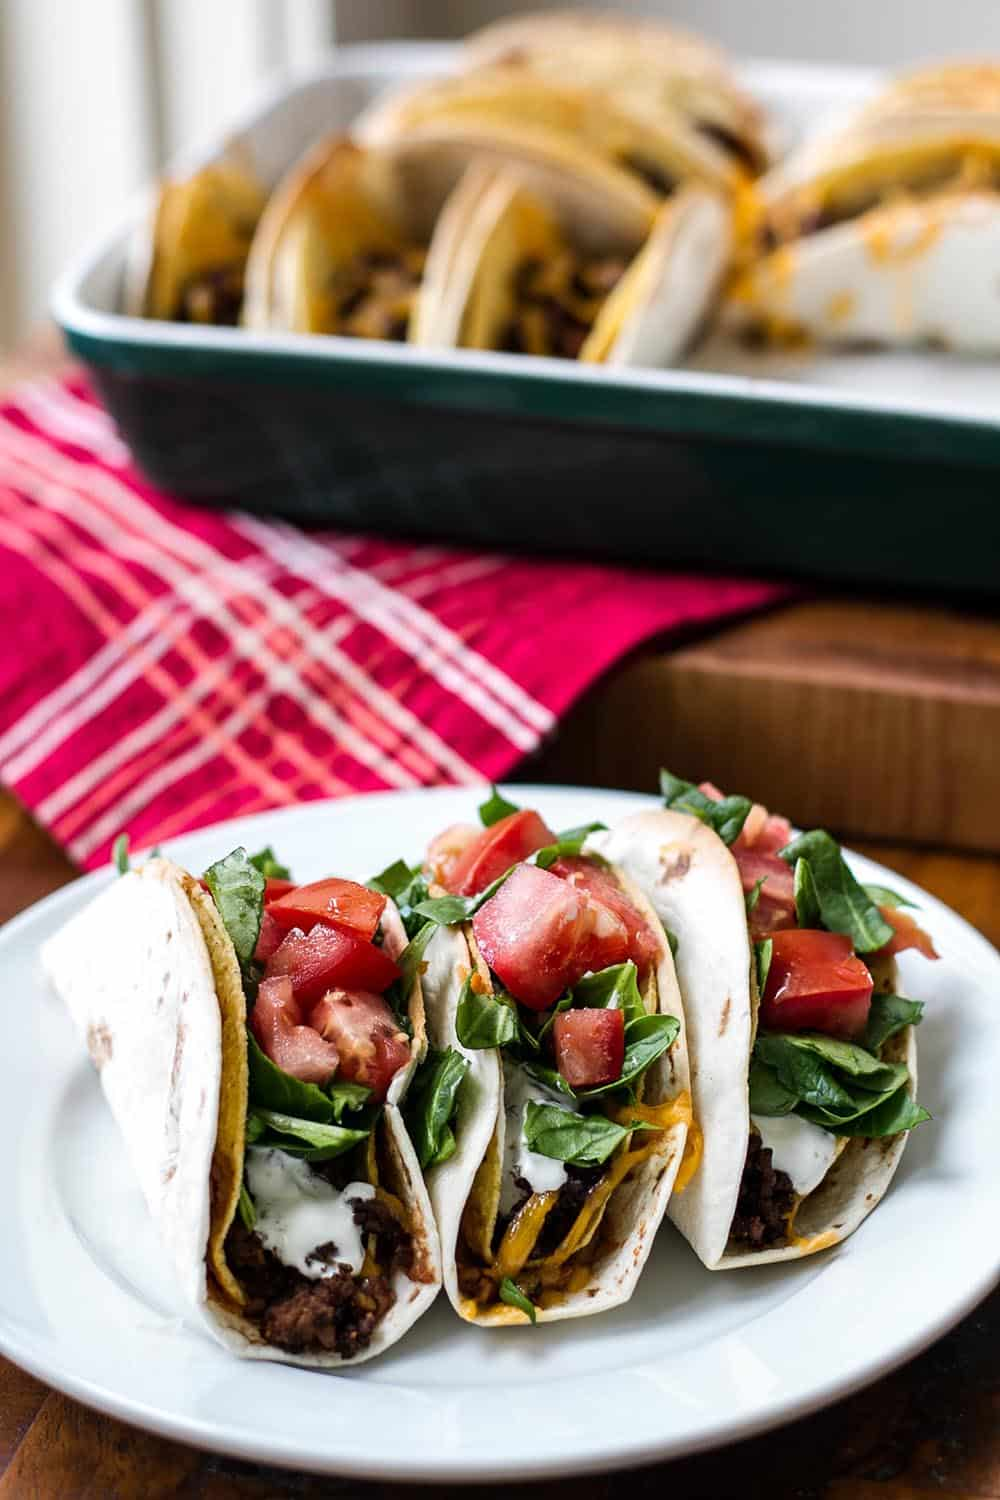 Baked double decker tacos on a white plate with a baking dish in the background